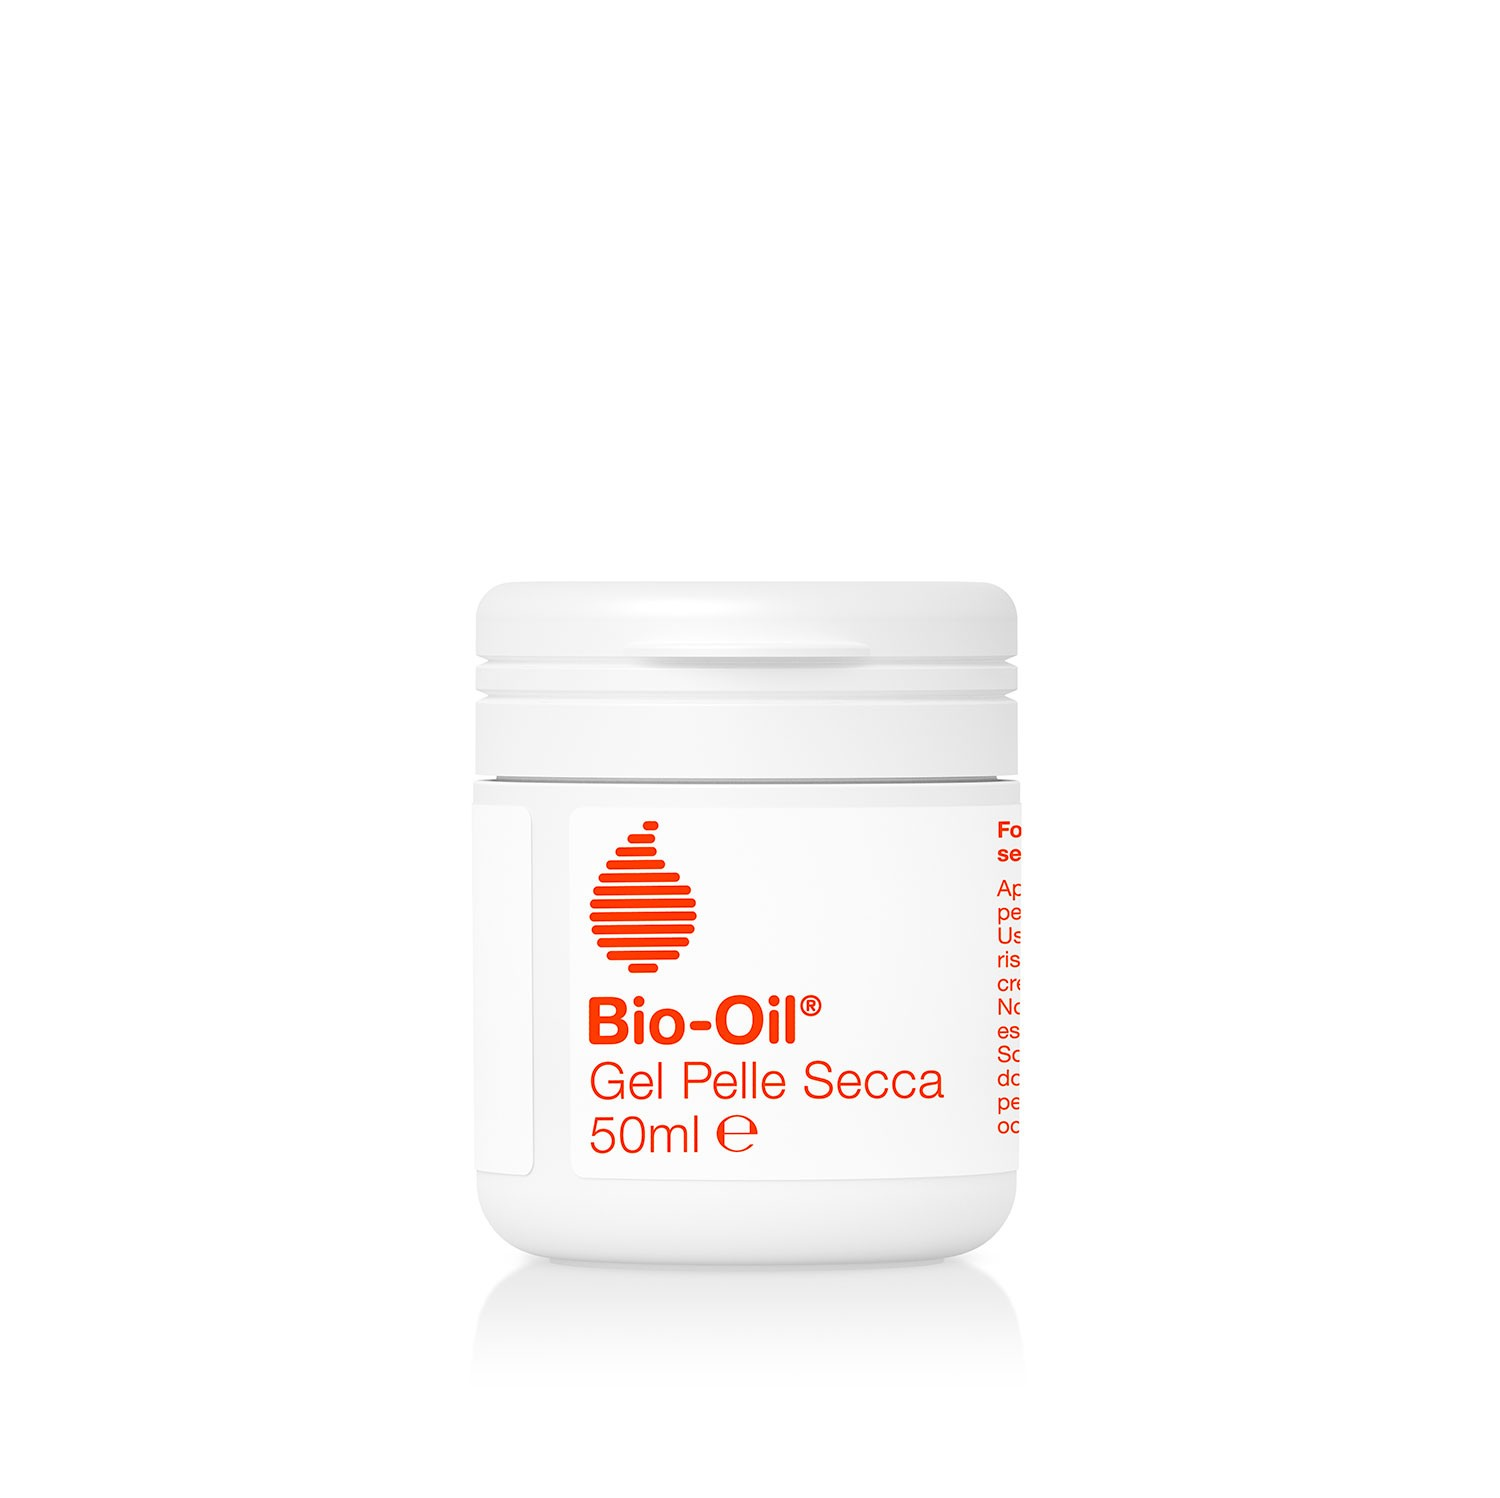 BIO OIL GEL PELLE SECCA 50 ML - Farmacento